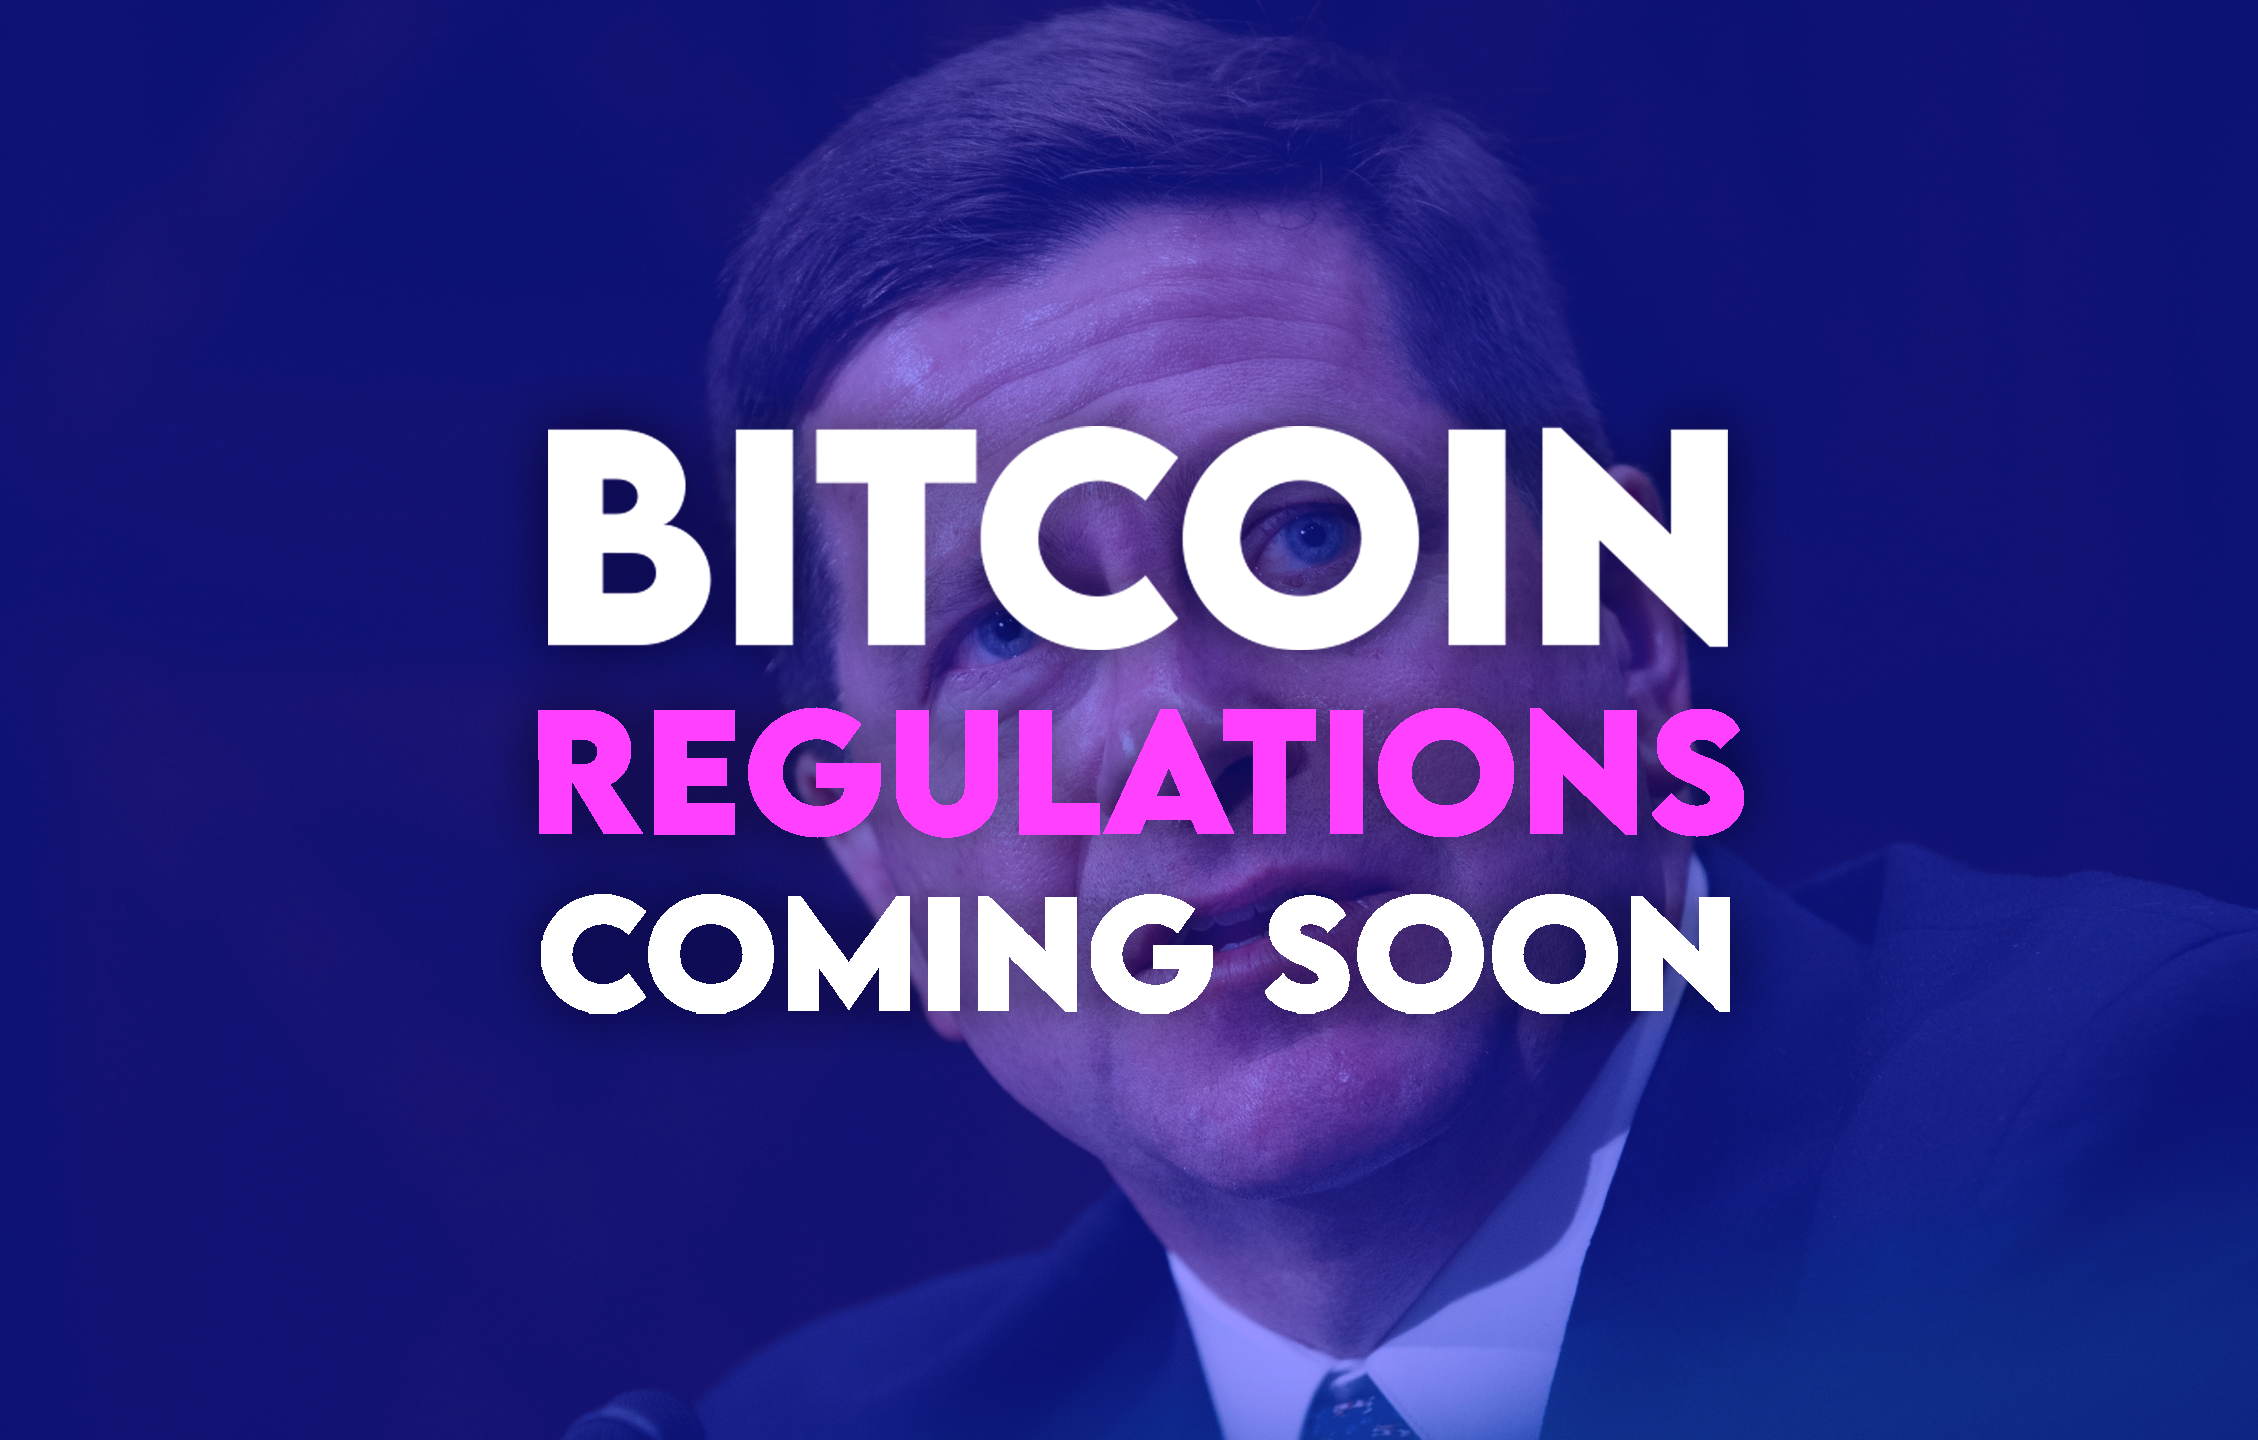 Former SEC Chairman Jay Clayton tips new Bitcoin regulations are coming